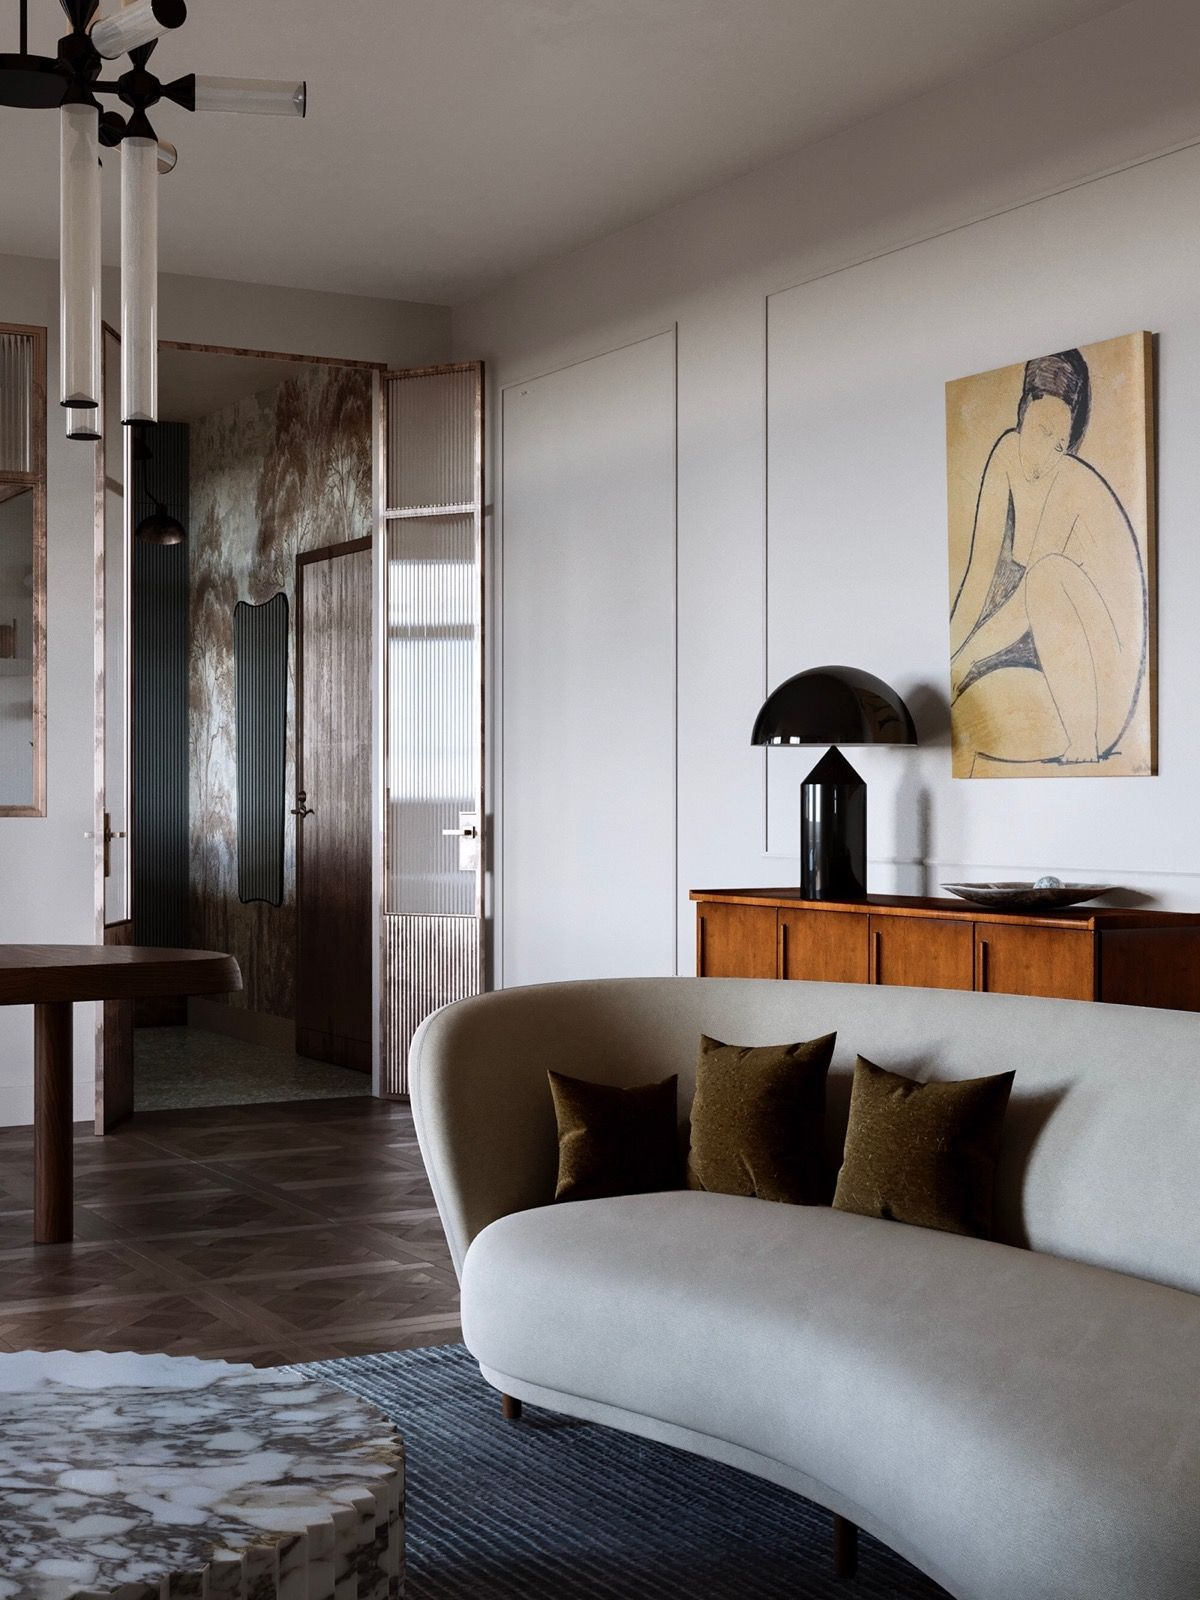 Beautiful Interiors That Combine An Old Warsaw Mood With ...